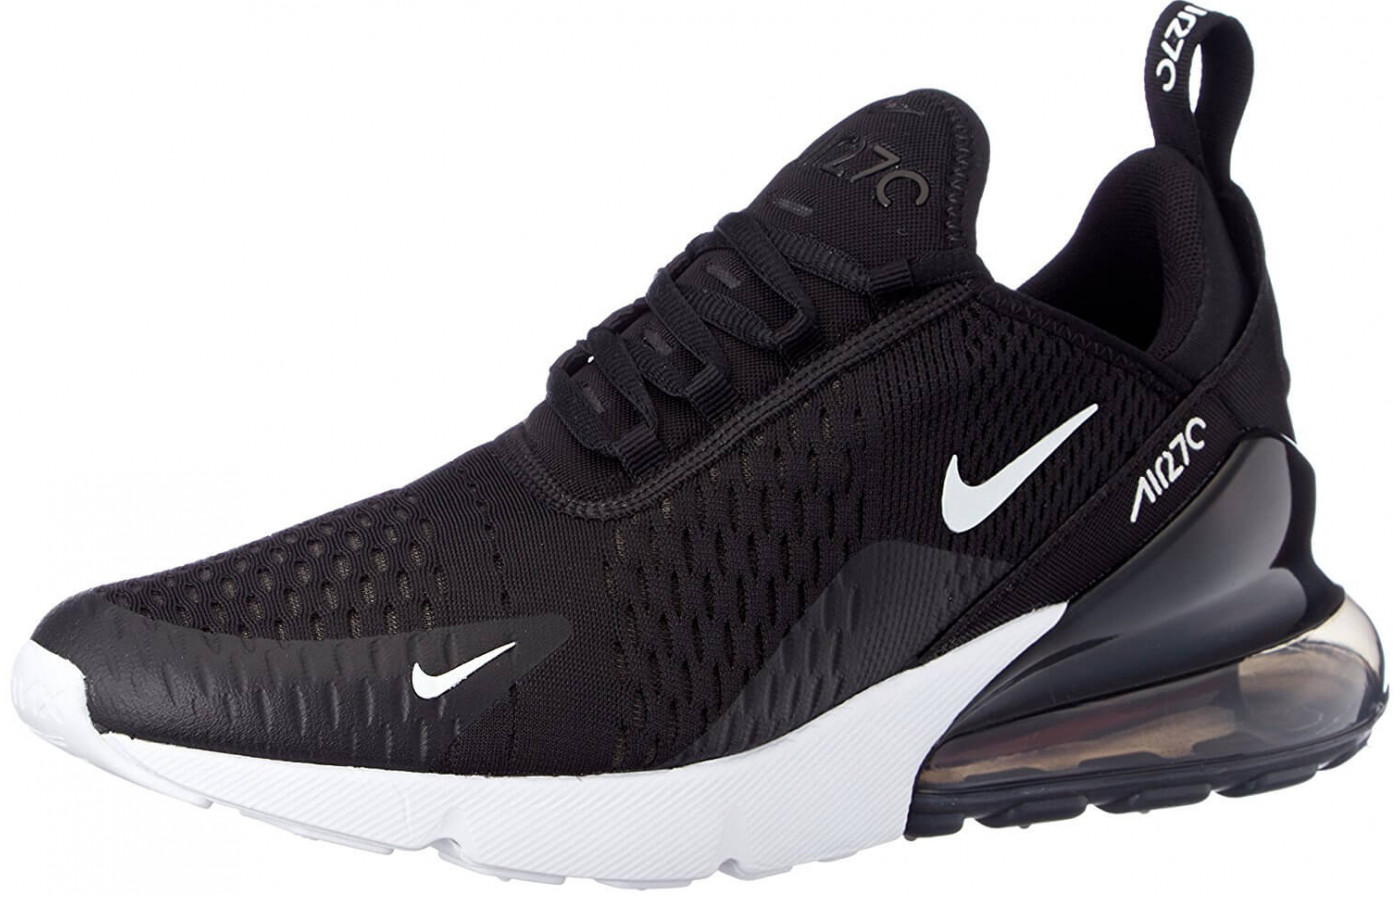 8e923b96d8701 Nike Air Max 270. Mesh upper and 270 degrees of Air ...